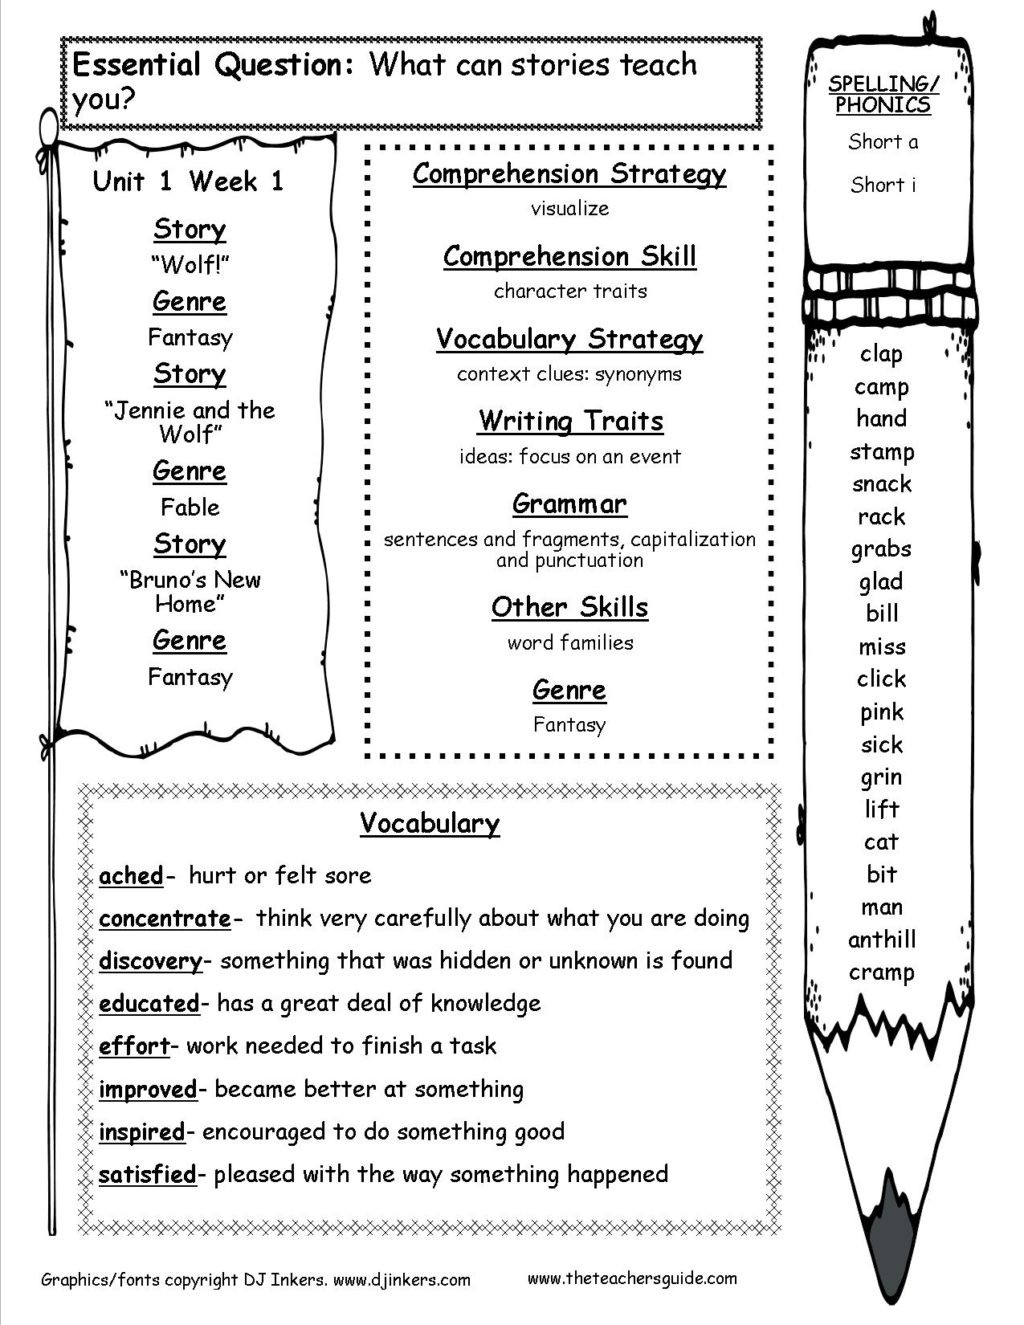 5th Grade Worksheets Printable Reading Worksheet Free Printable Reading Worksheets for